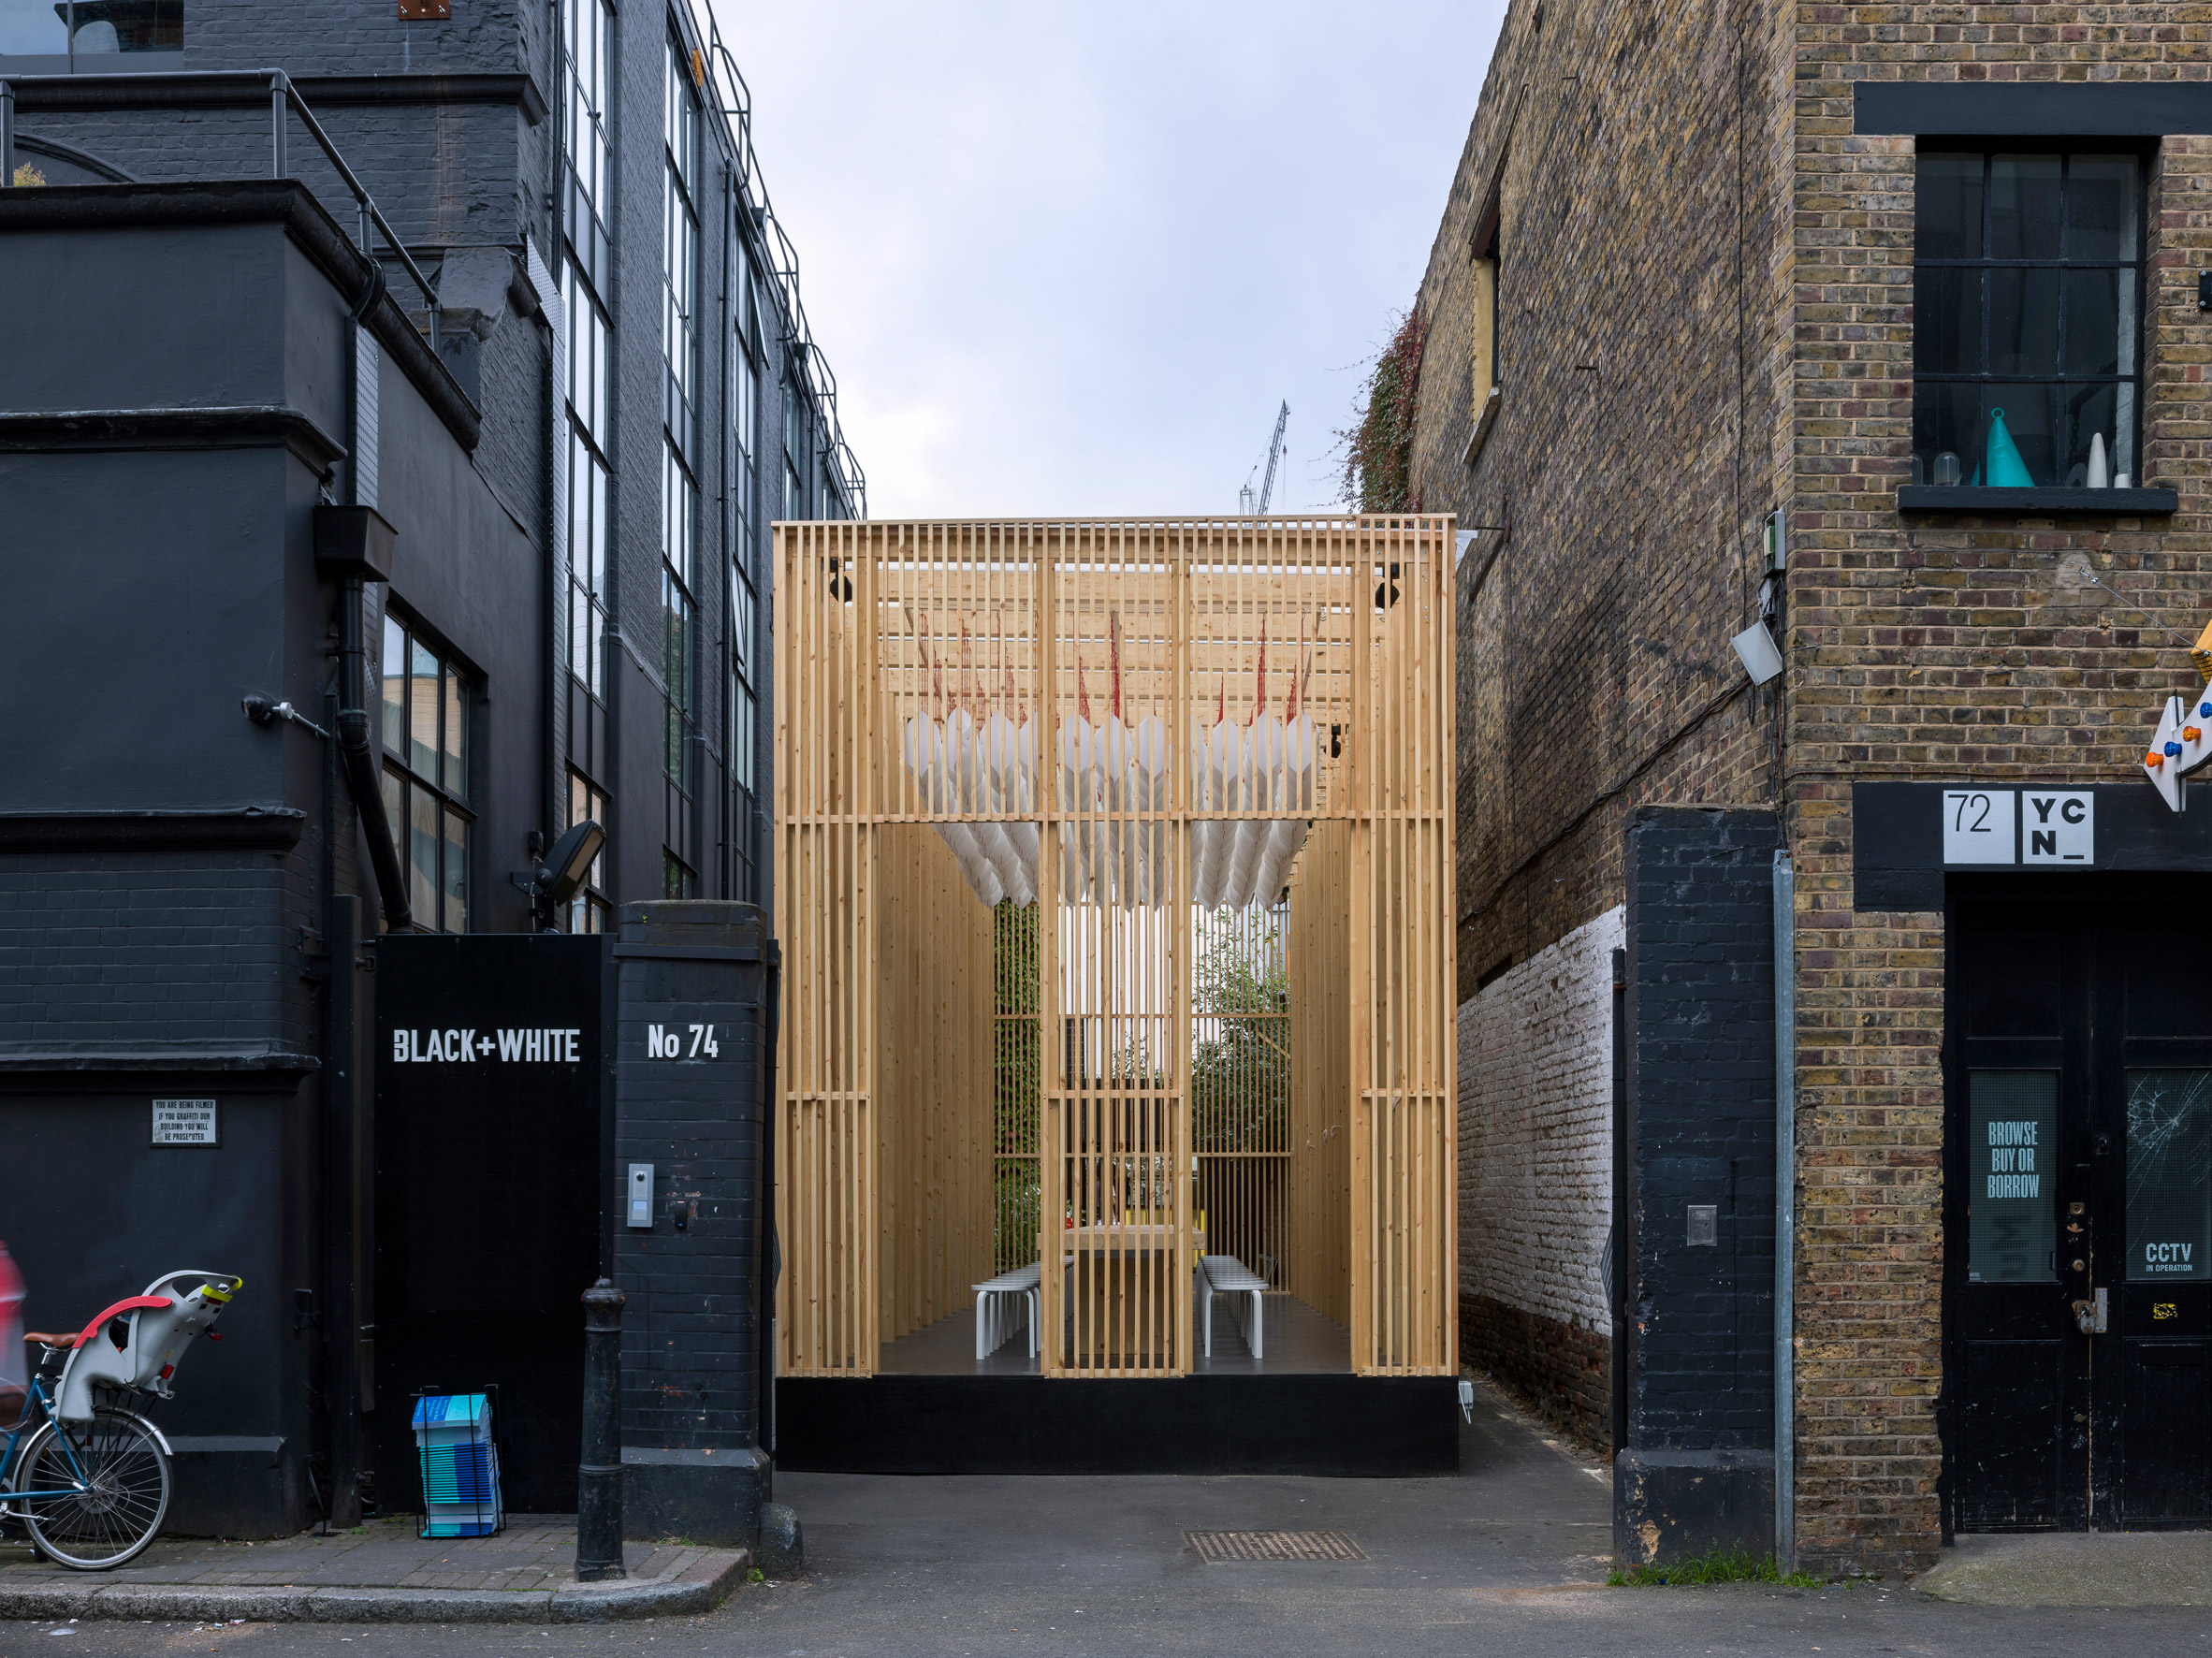 Universal Design Studio builds daydreaming hub for Shoreditch workers